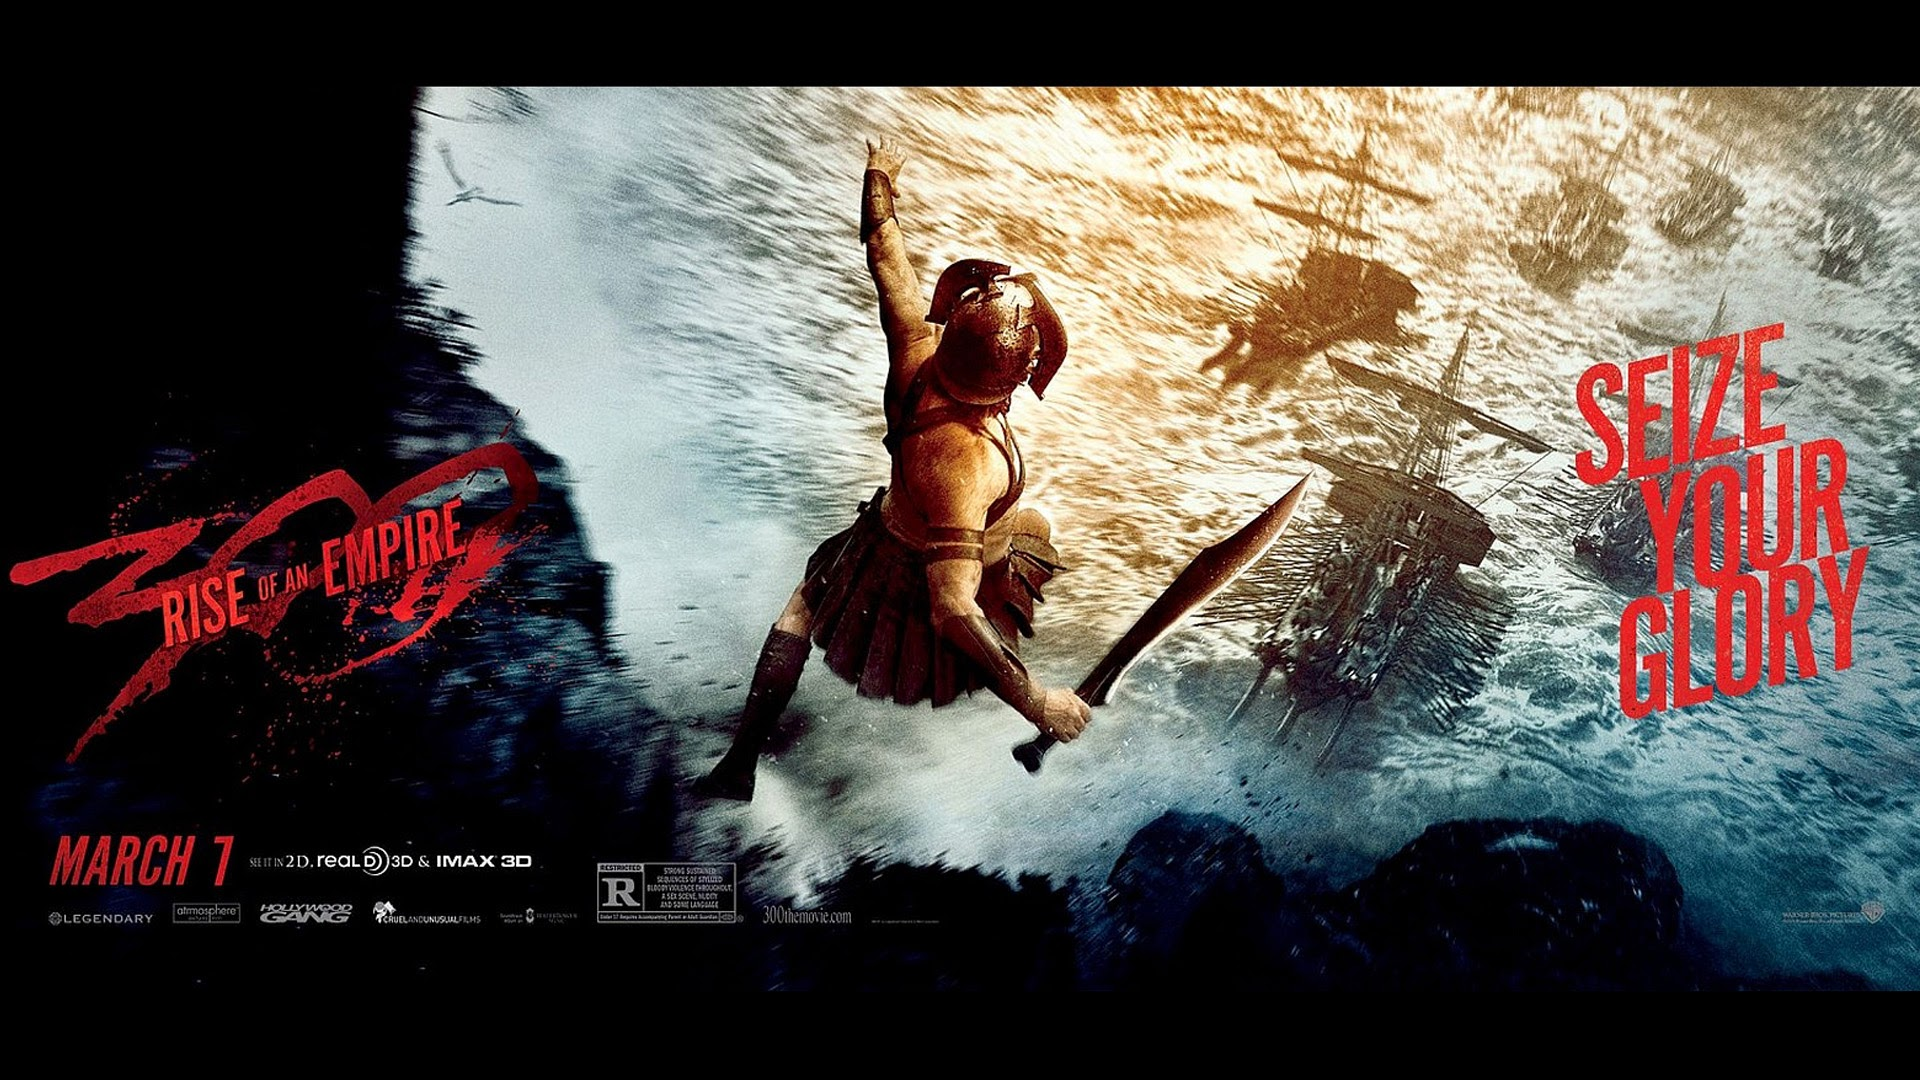 300 rise of an empire poster 2014 movie hd wallpaper 1920x1080 4h 1920x1080